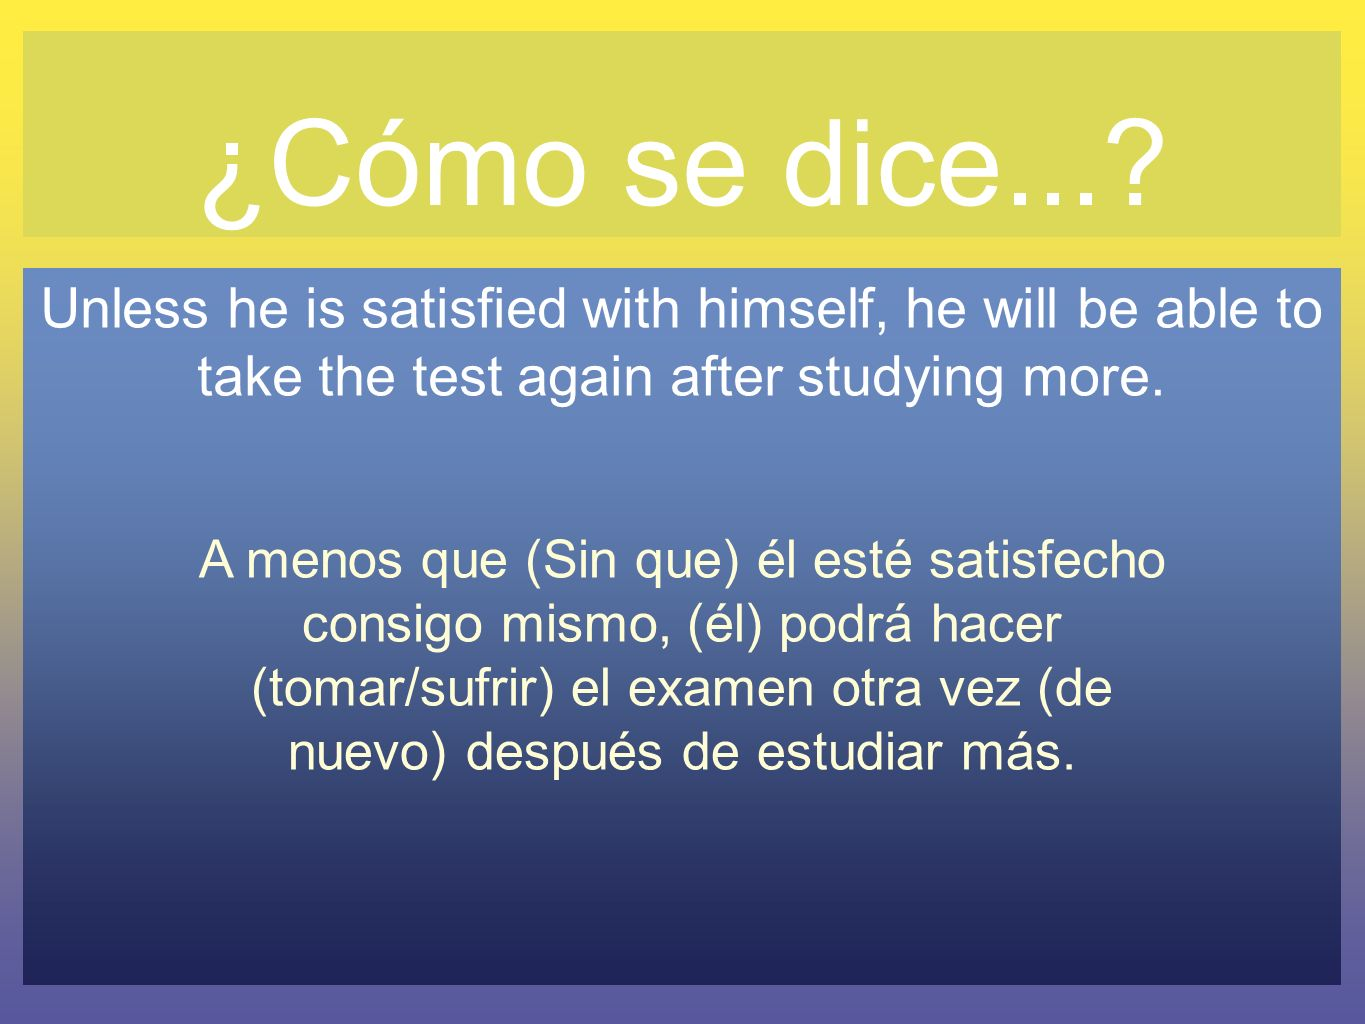 ¿Cómo se dice... Unless he is satisfied with himself, he will be able to take the test again after studying more.